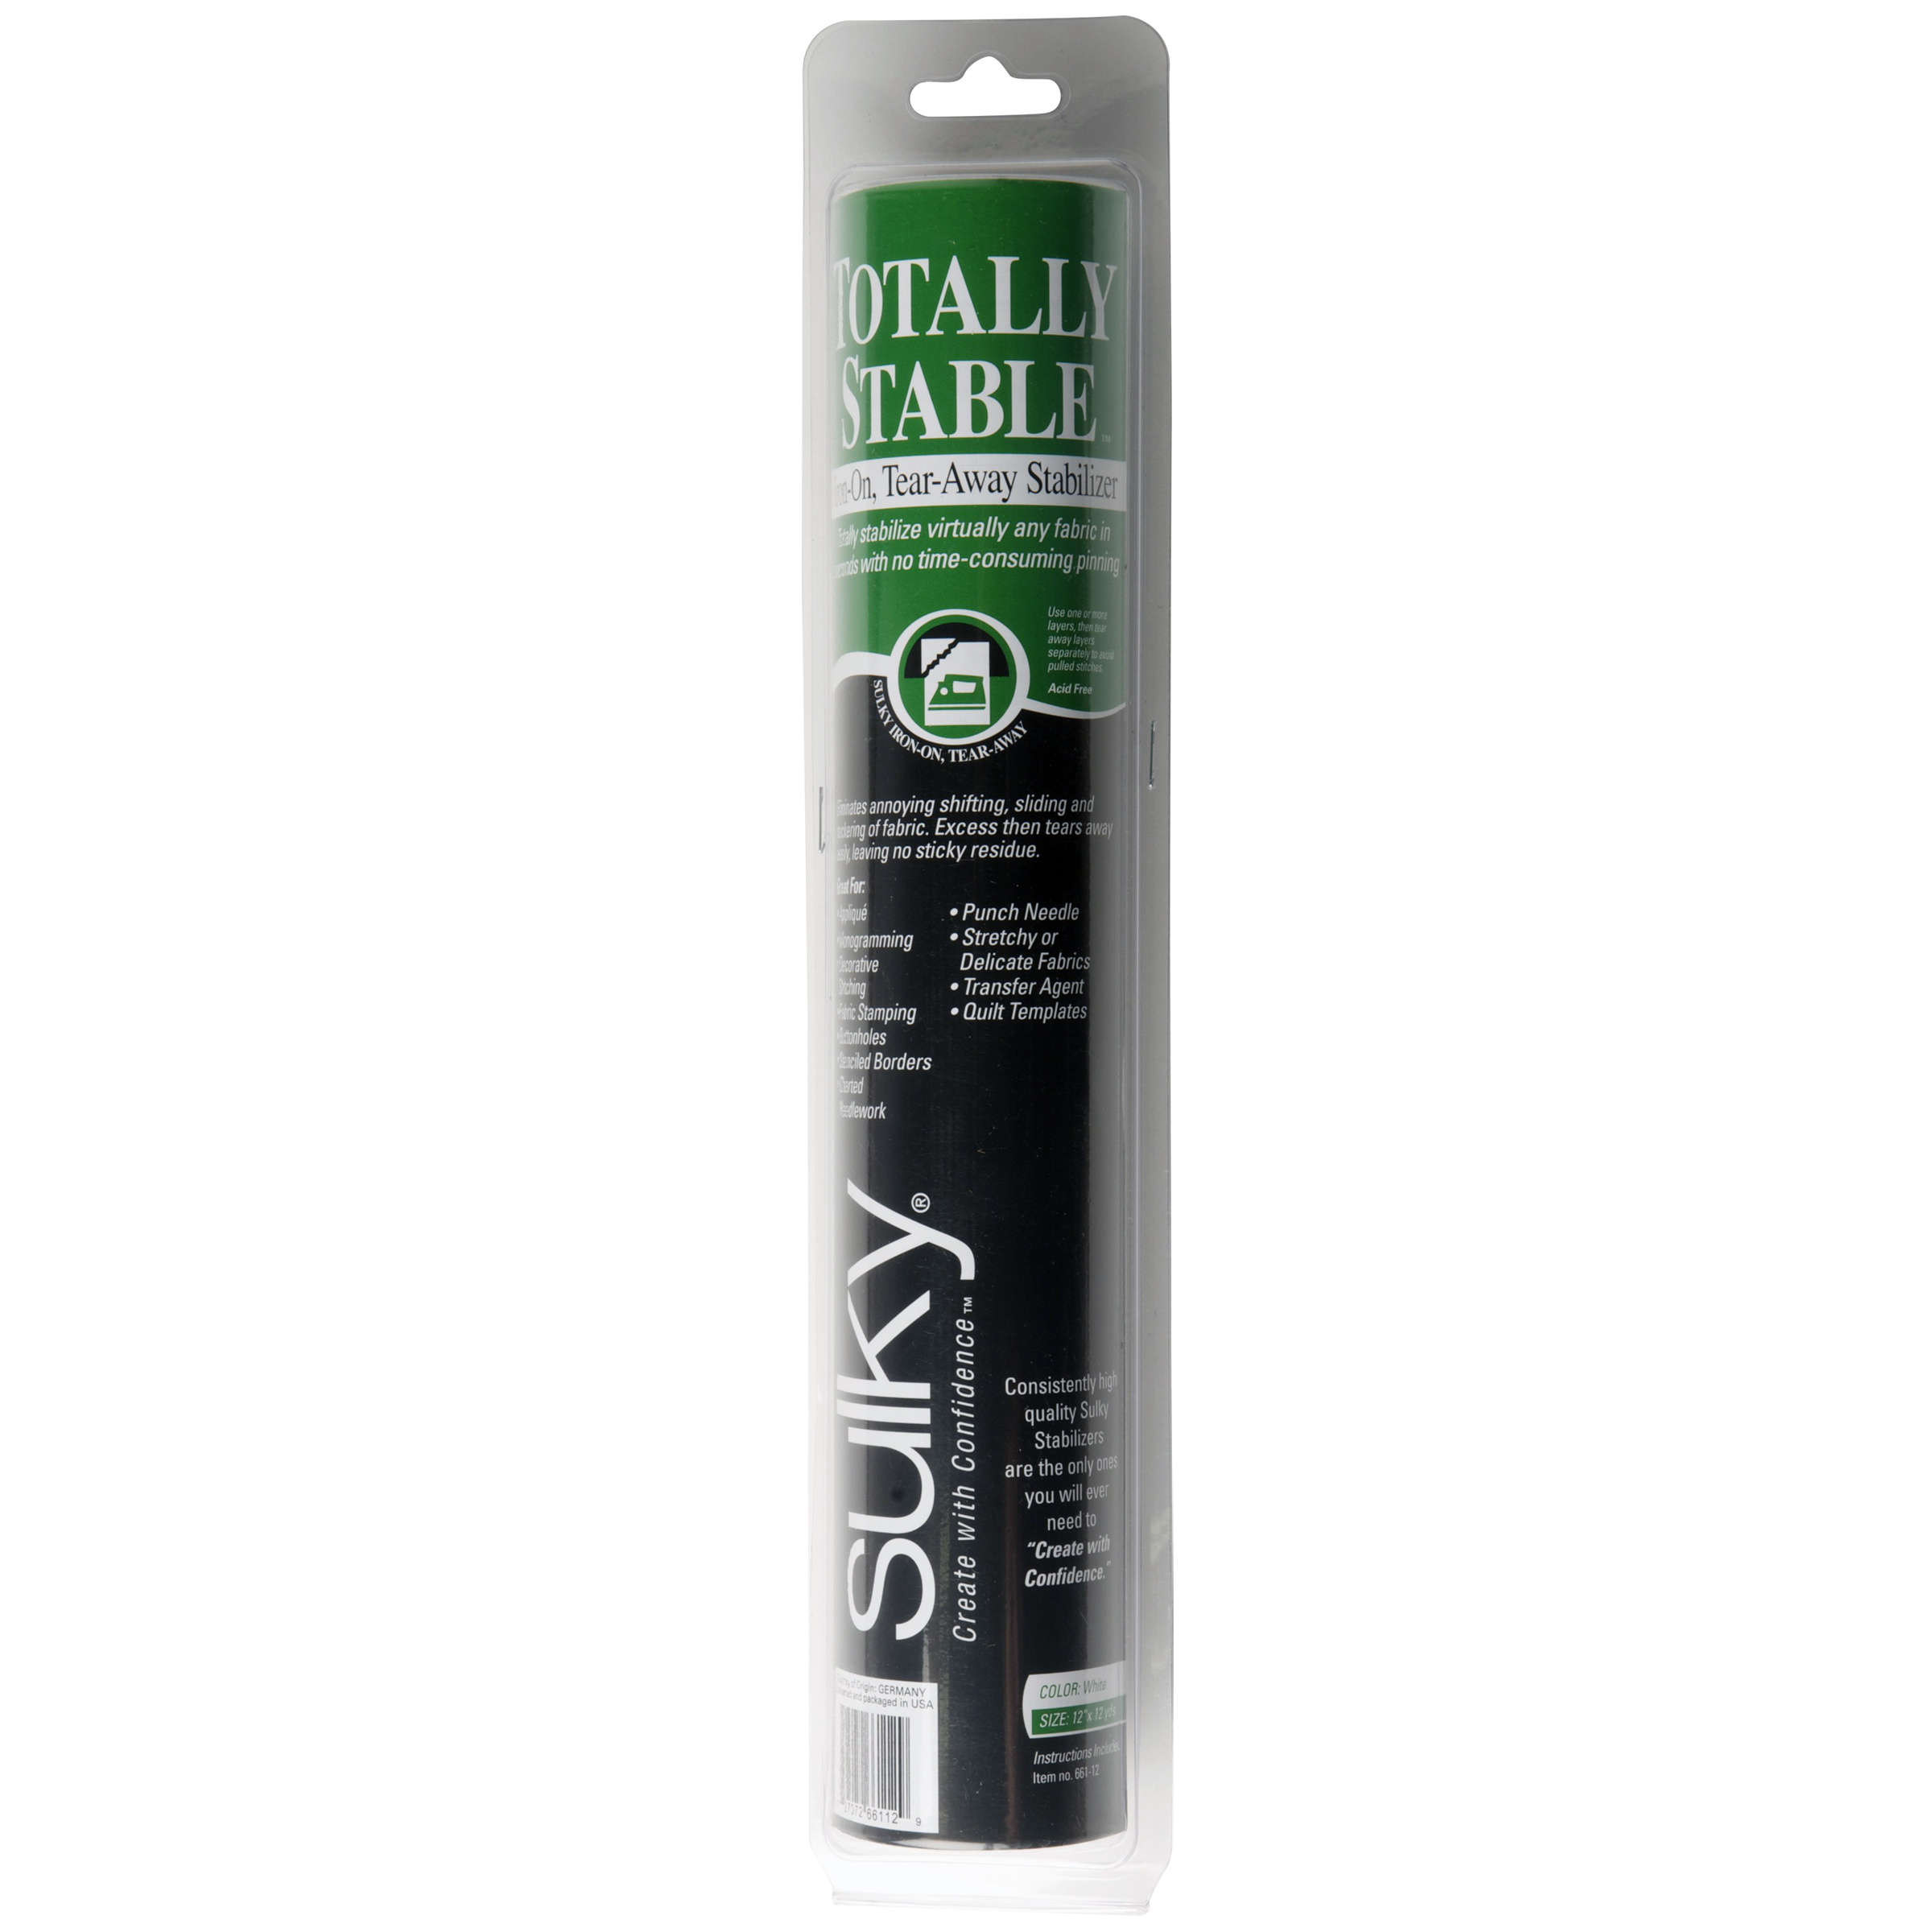 Sulky Totally Stable Stabilizer - White - 12'' x 12 yd. Roll Questions & Answers